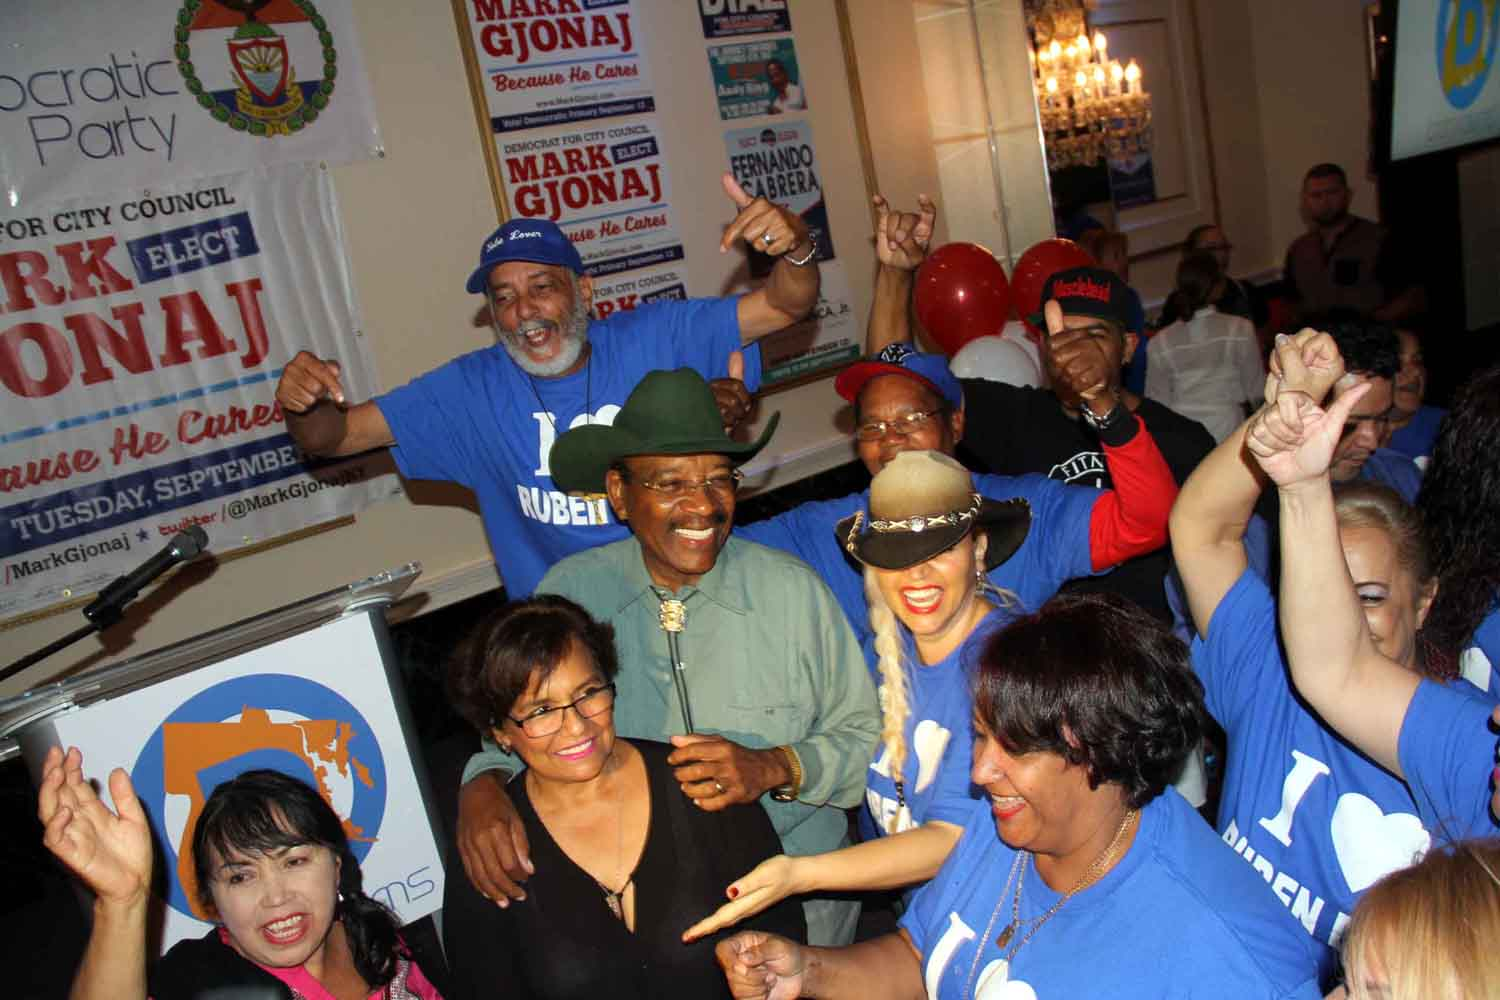 Senator Ruben Diaz, Sr., is surrounded by supporters after defeating several challengers for the City Council seat in District 18.--Photo by David Greene